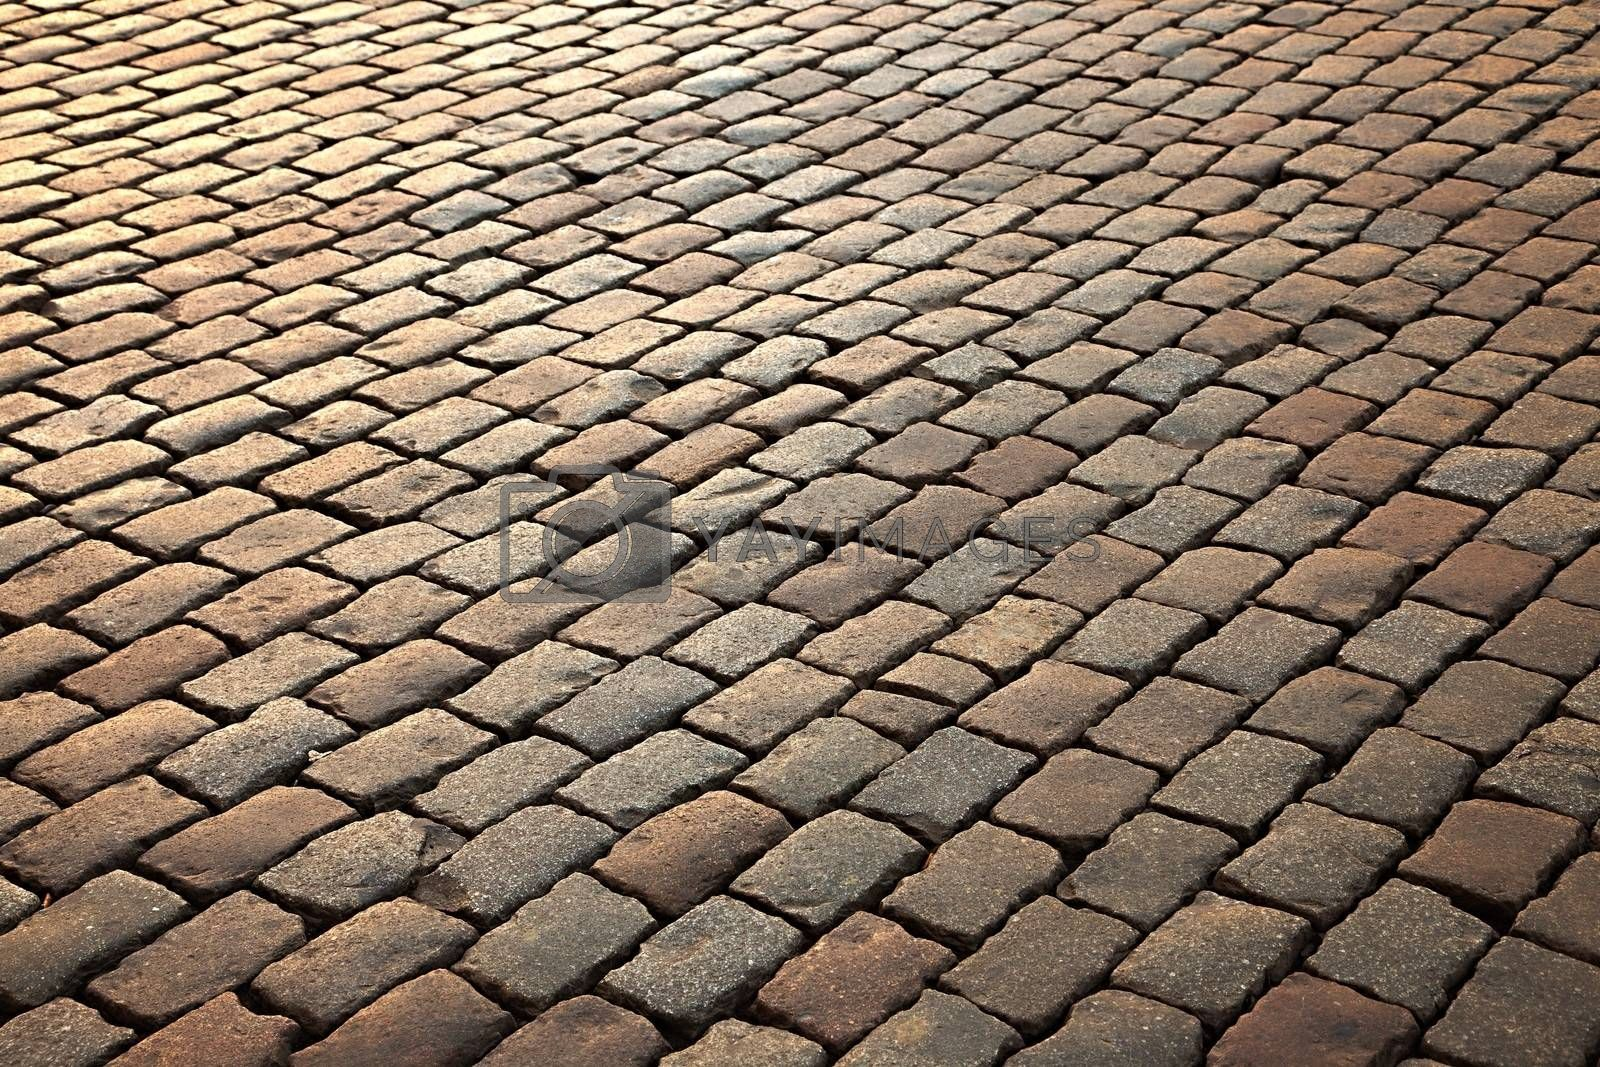 Royalty free image of Pavement by Gudella